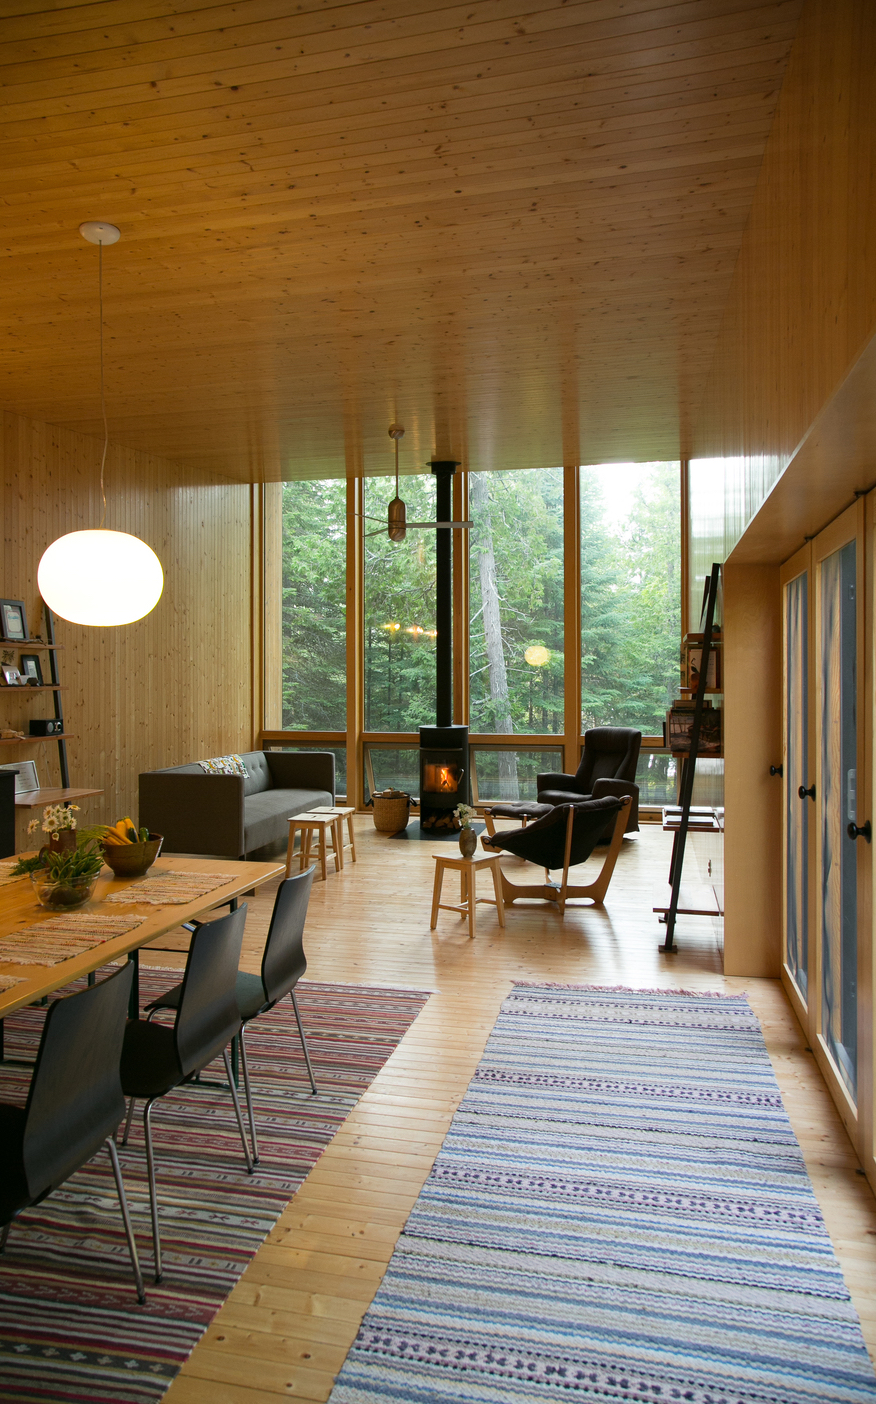 Curl up next to the modern fireplace for unbeatable lofted views of the forest and lakefront. /  Source